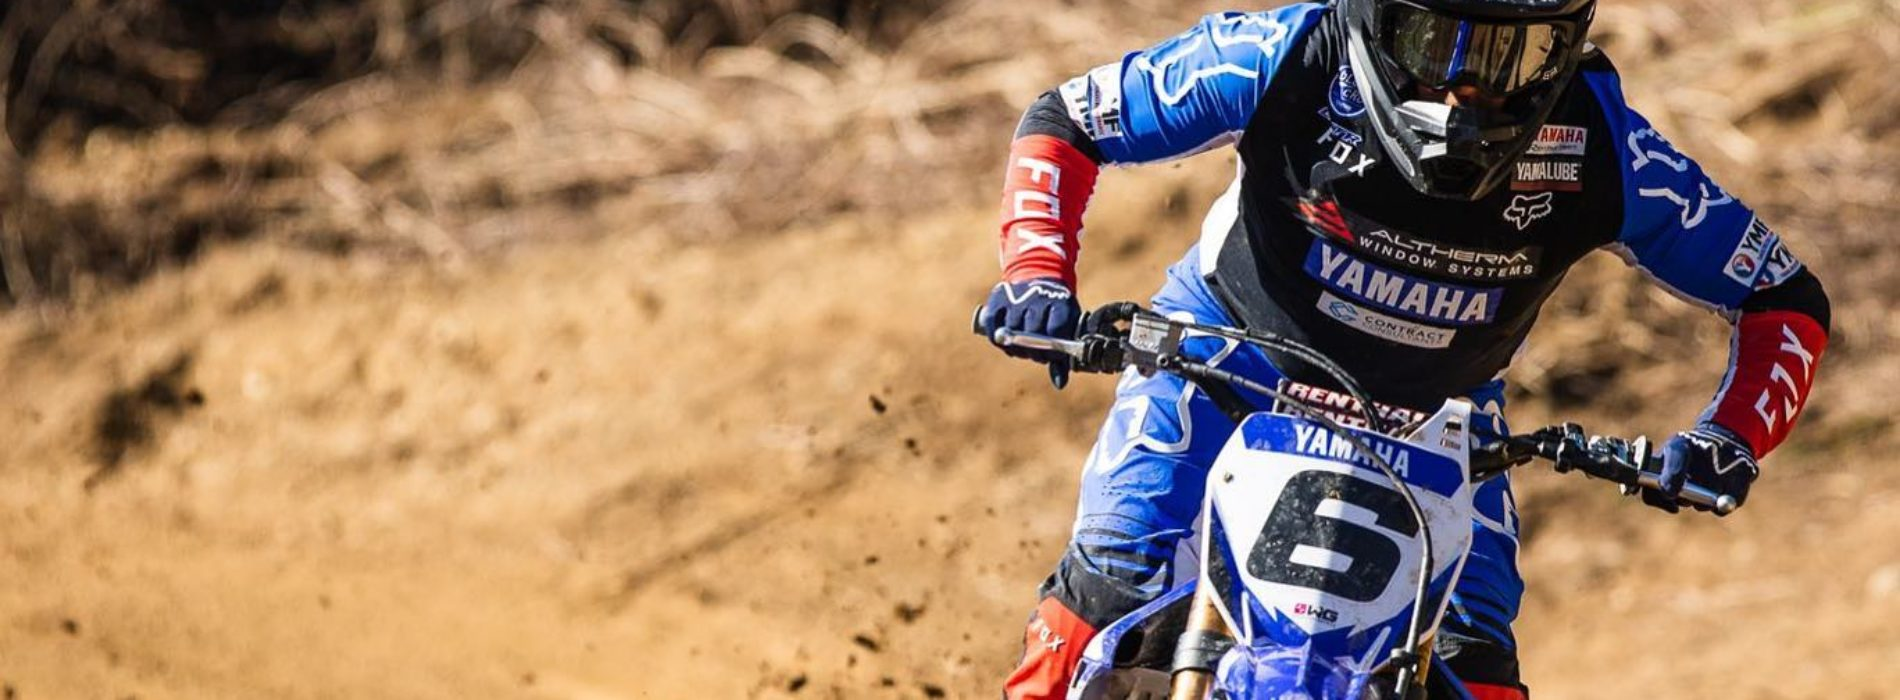 MXLink Live speaks with NZ's Motocross legend Josh Coppins on topic of Mental Health